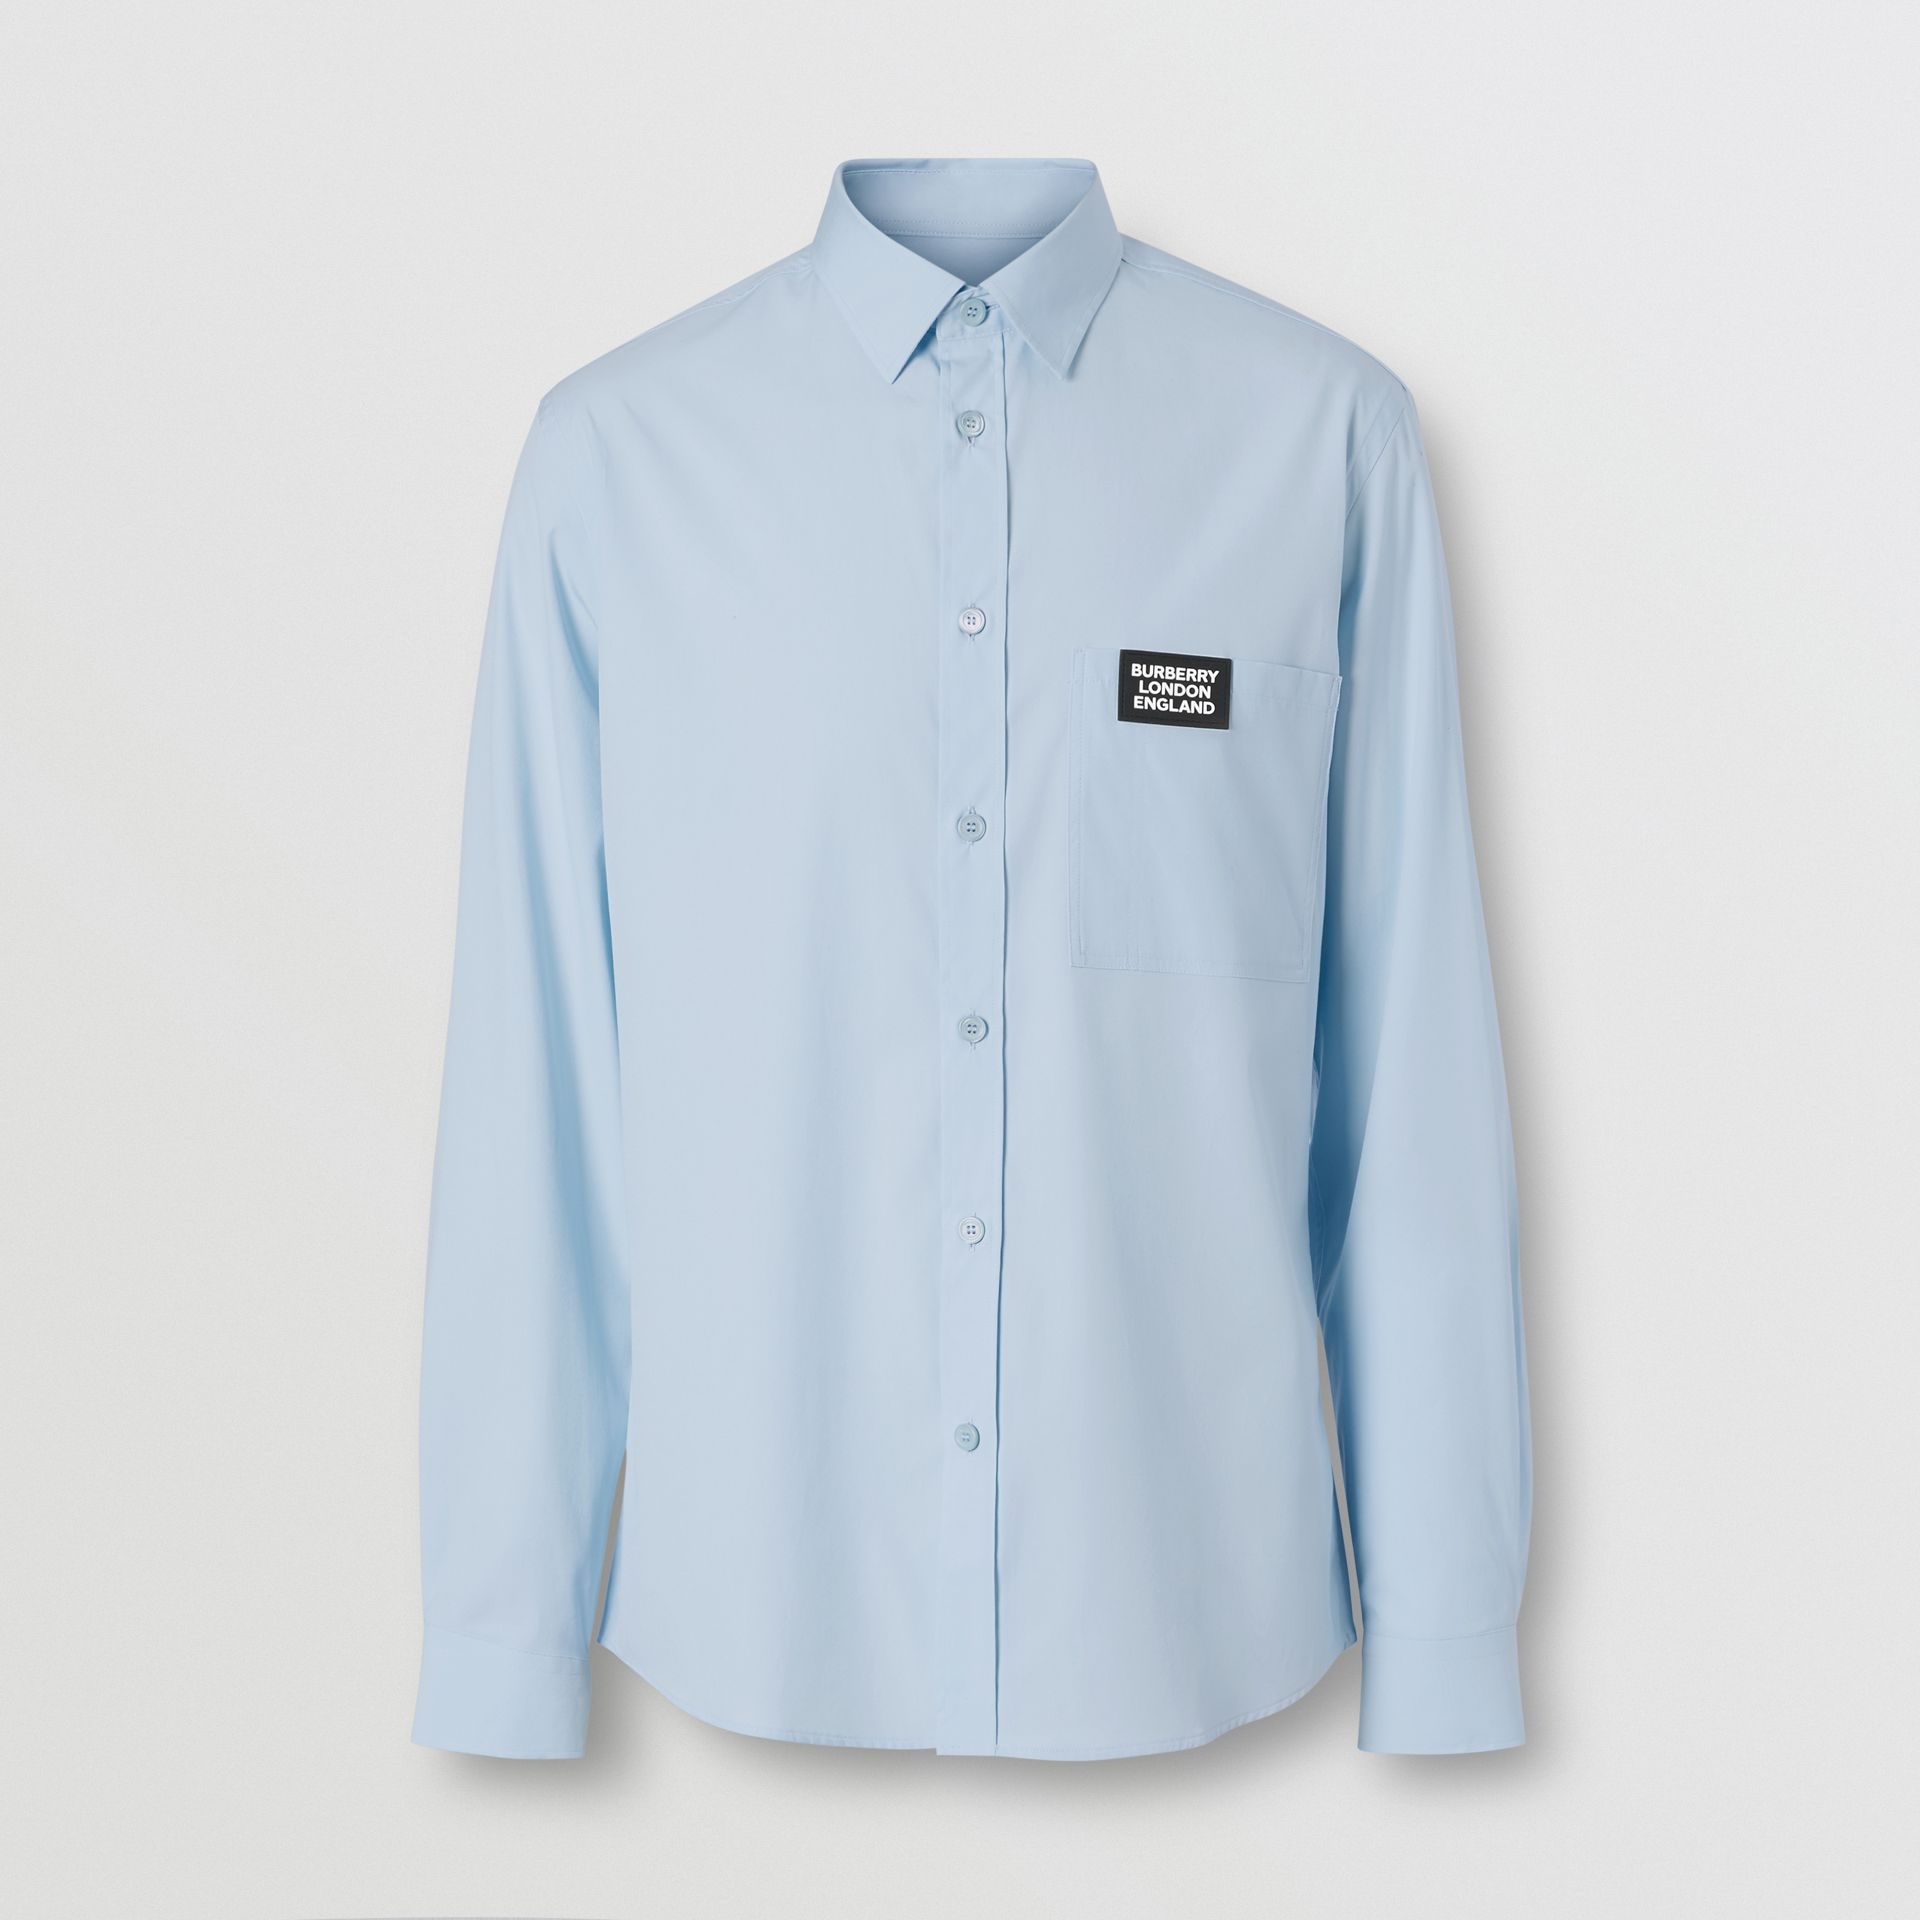 Logo Detail Stretch Cotton Poplin Shirt in Pale Blue - Men | Burberry Hong Kong S.A.R - gallery image 3